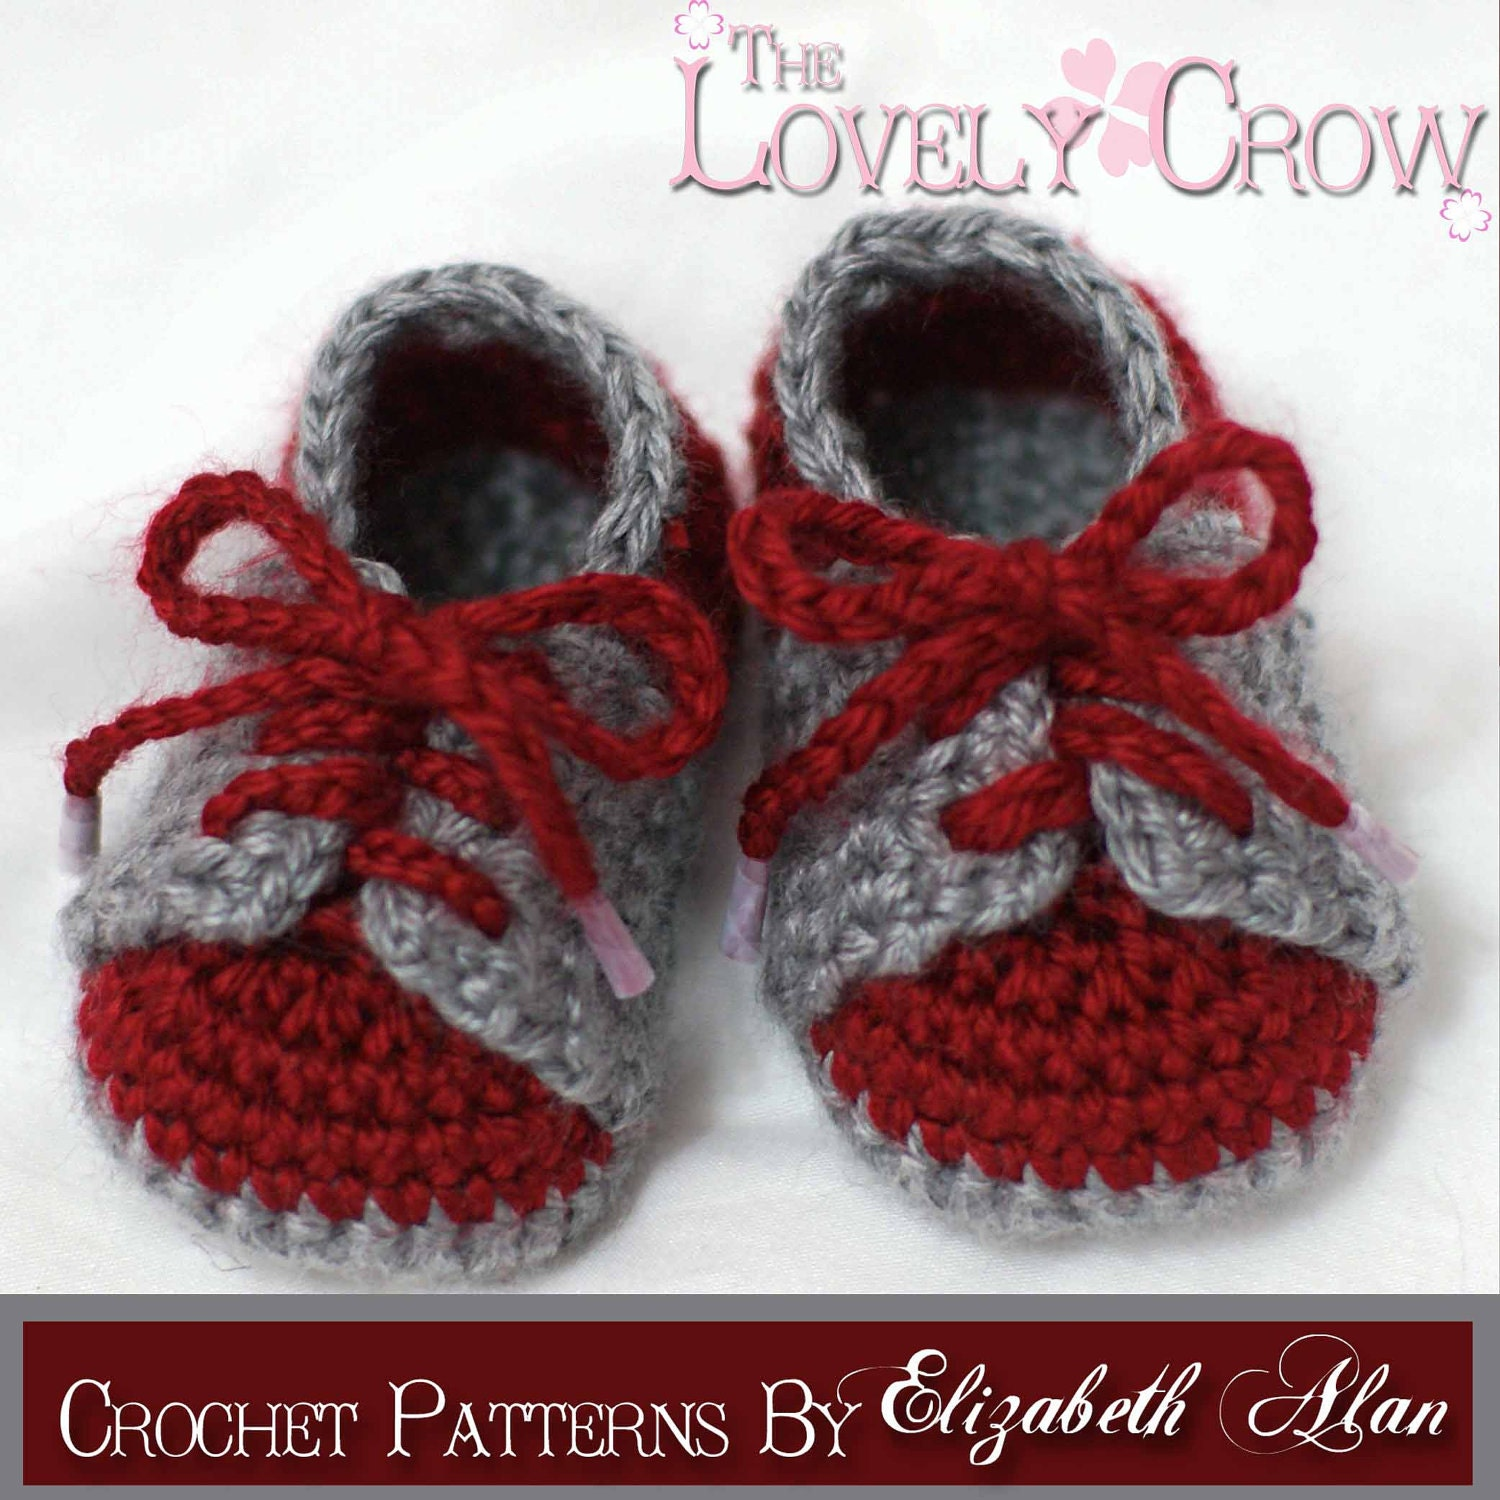 Crochet Baby Booties Pattern With Pictures : Baby Booties Crochet Pattern for LITTLE SPORT SADDLES digital